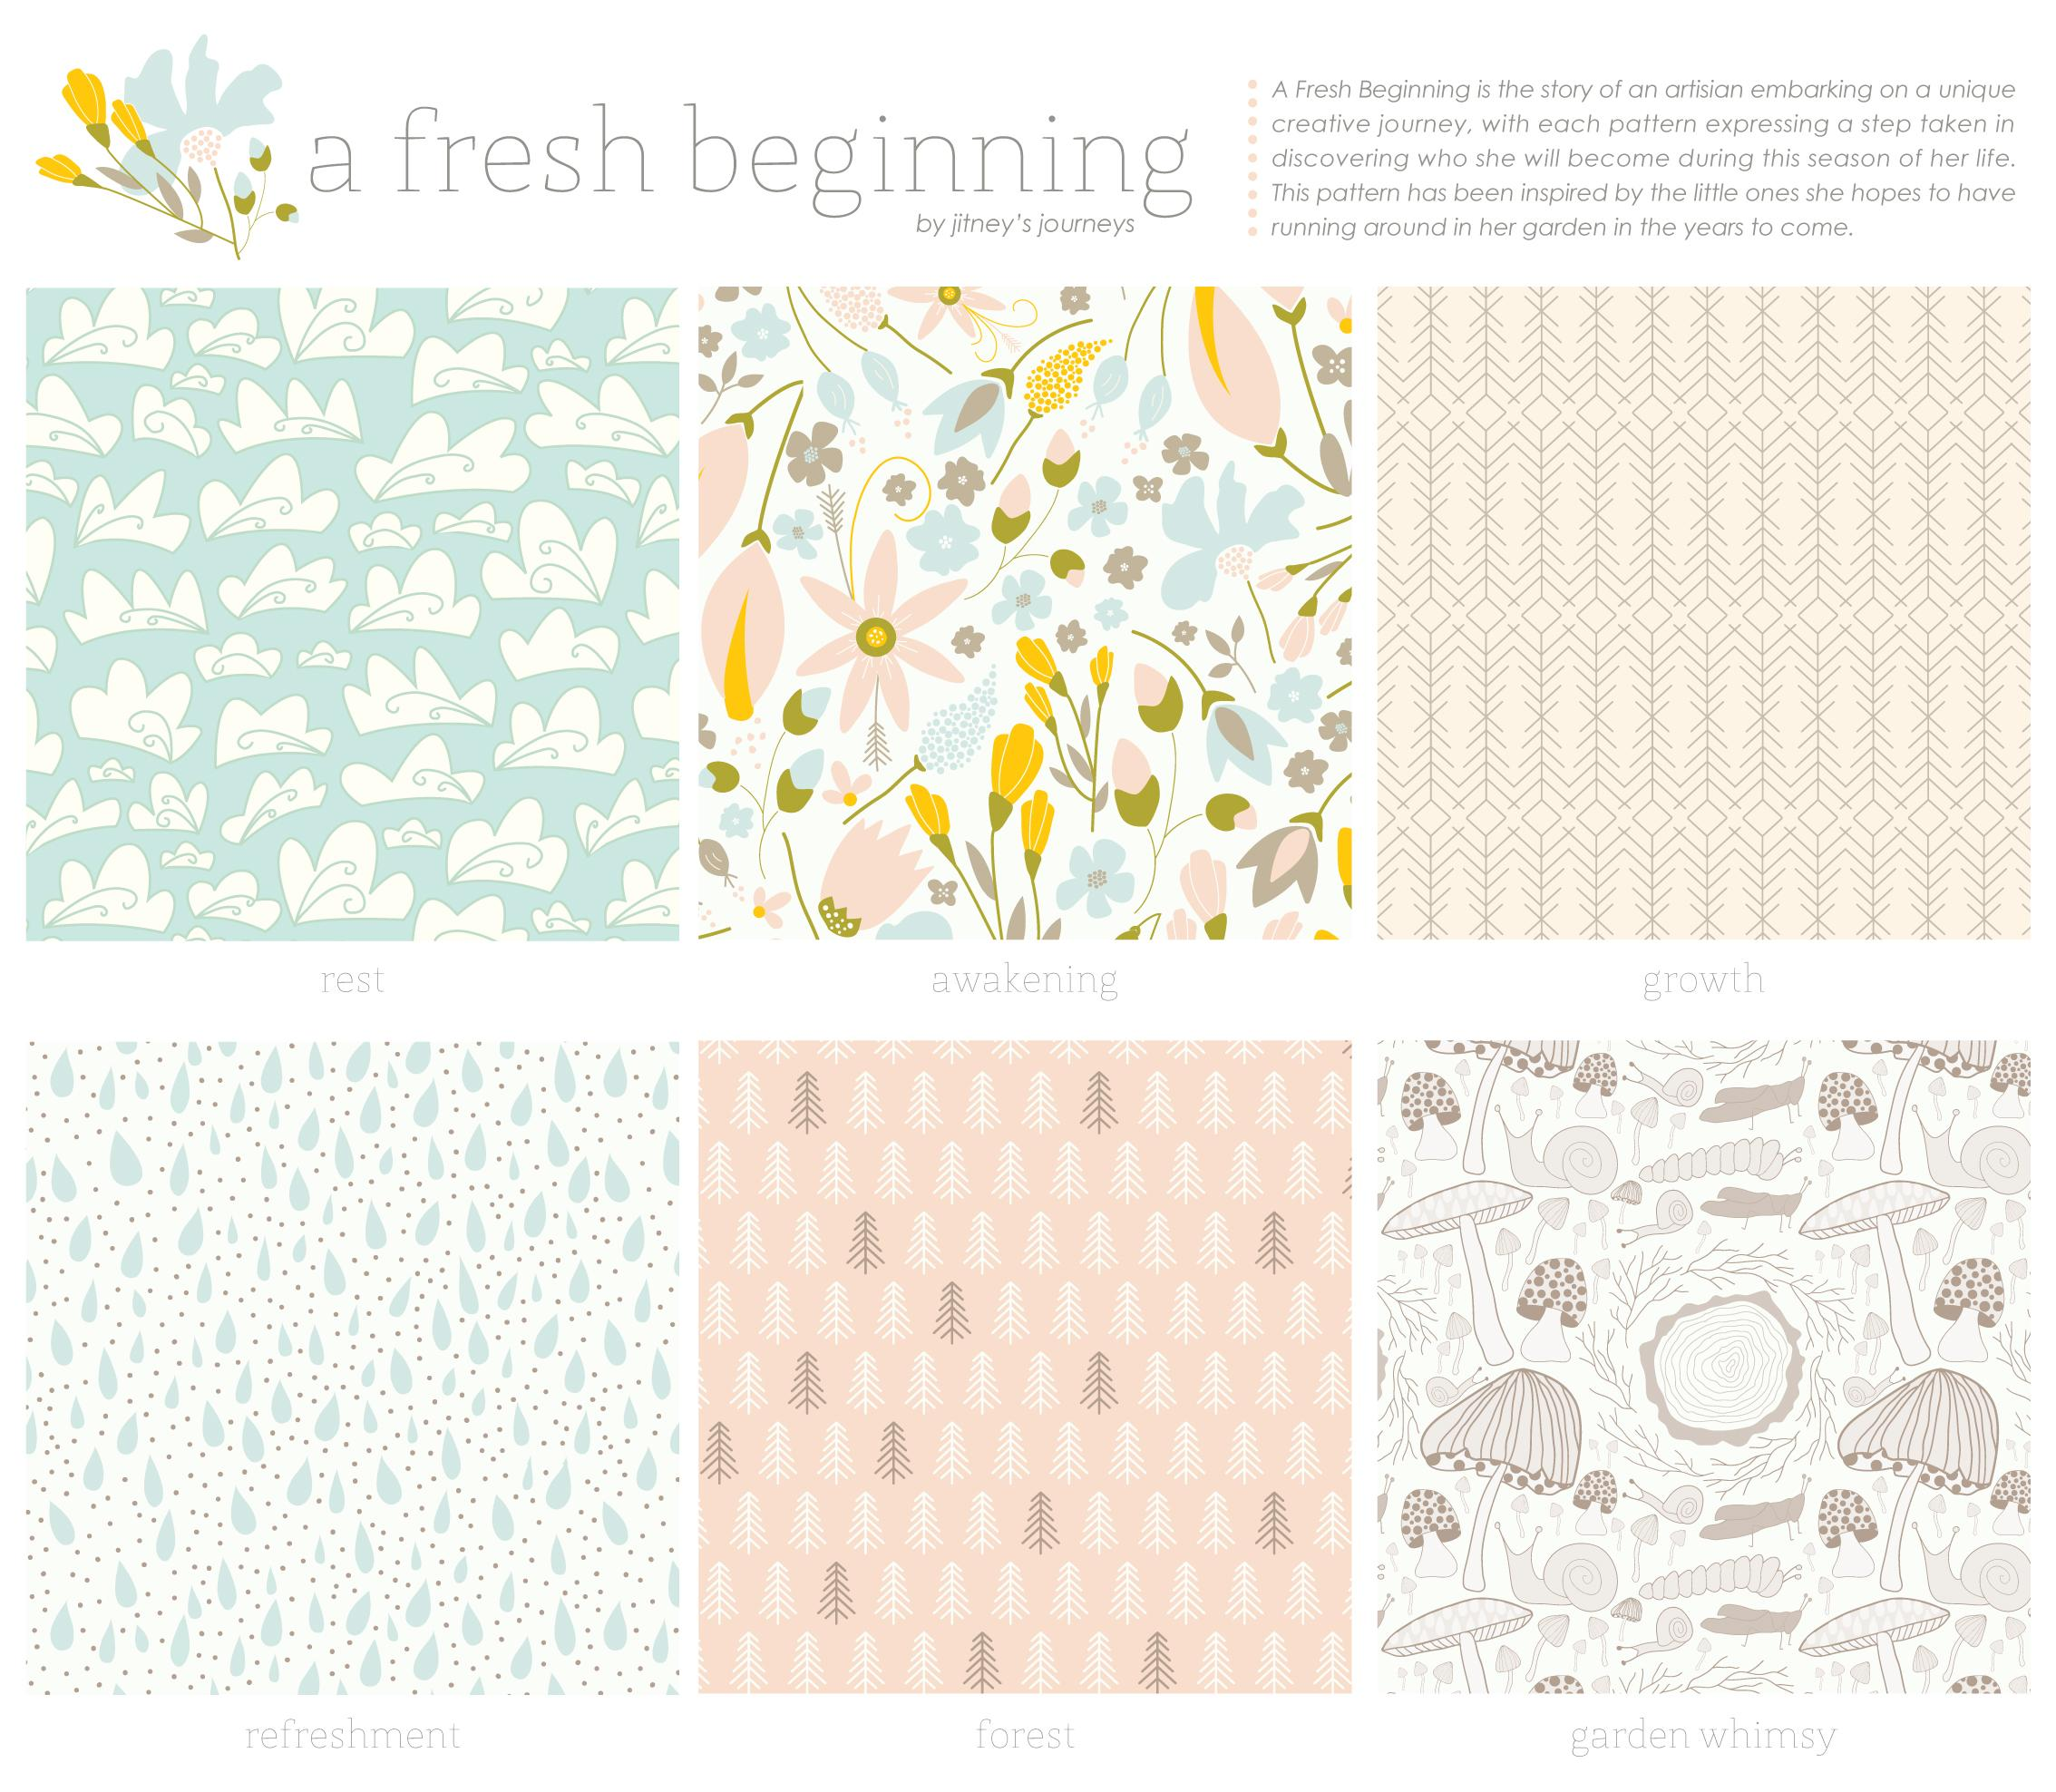 A Fresh Beginning - image 6 - student project